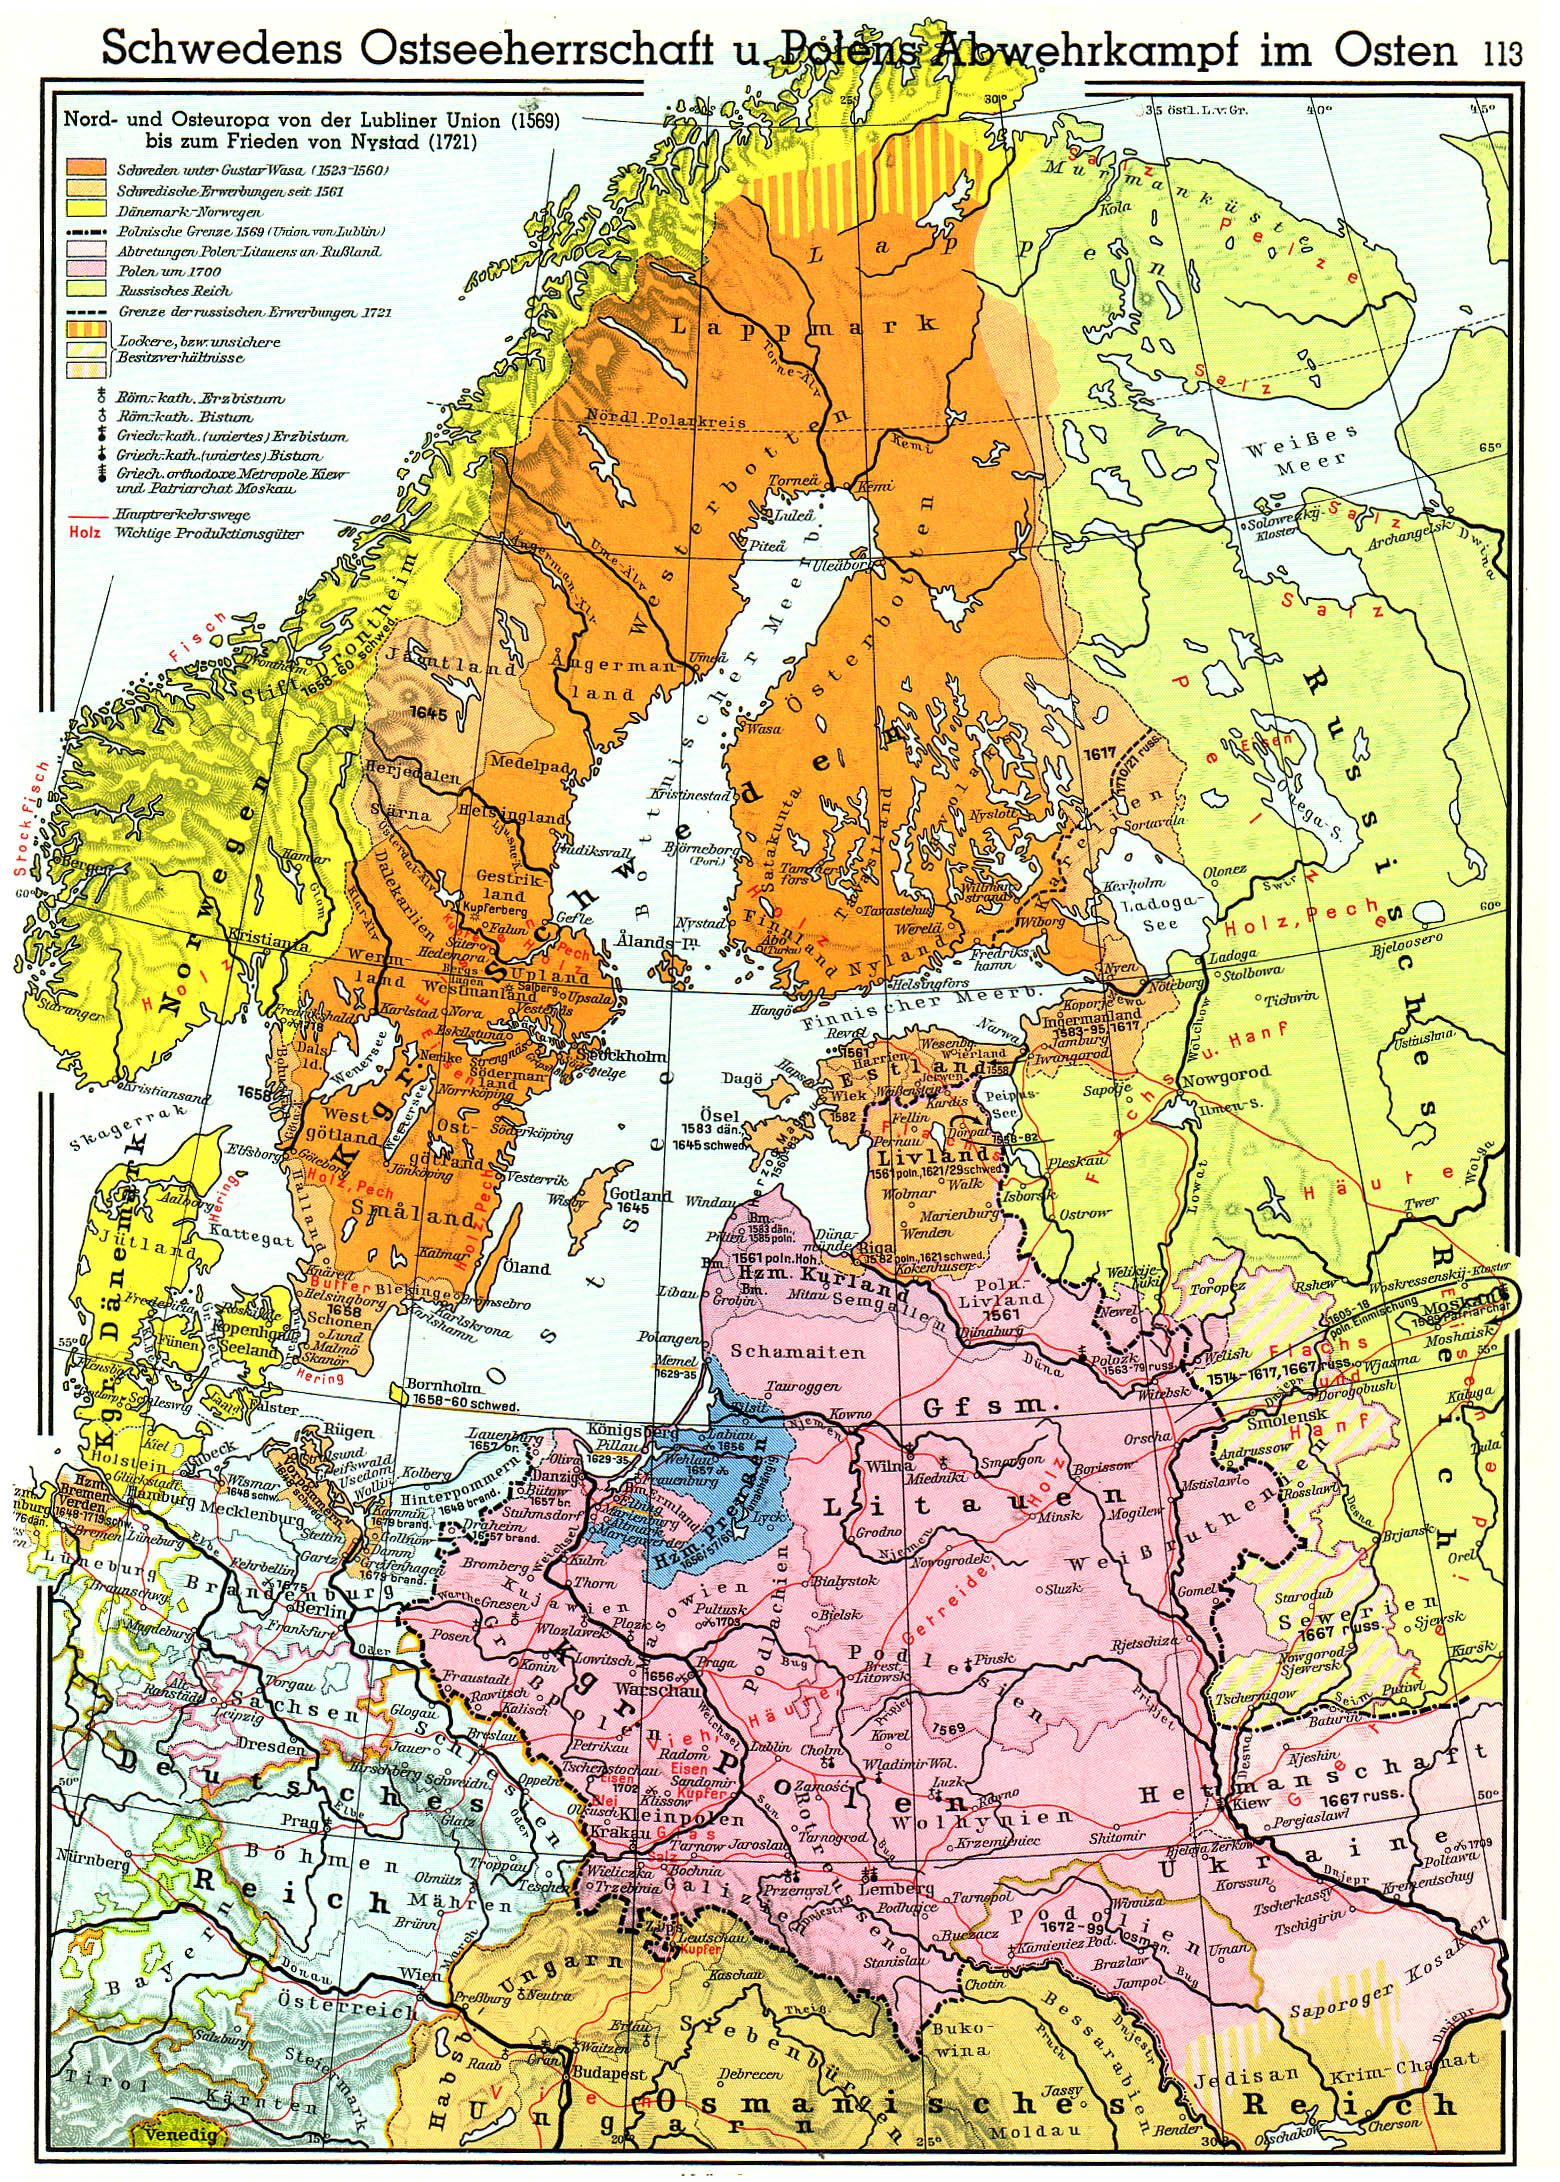 swedish empire in 1569 german language